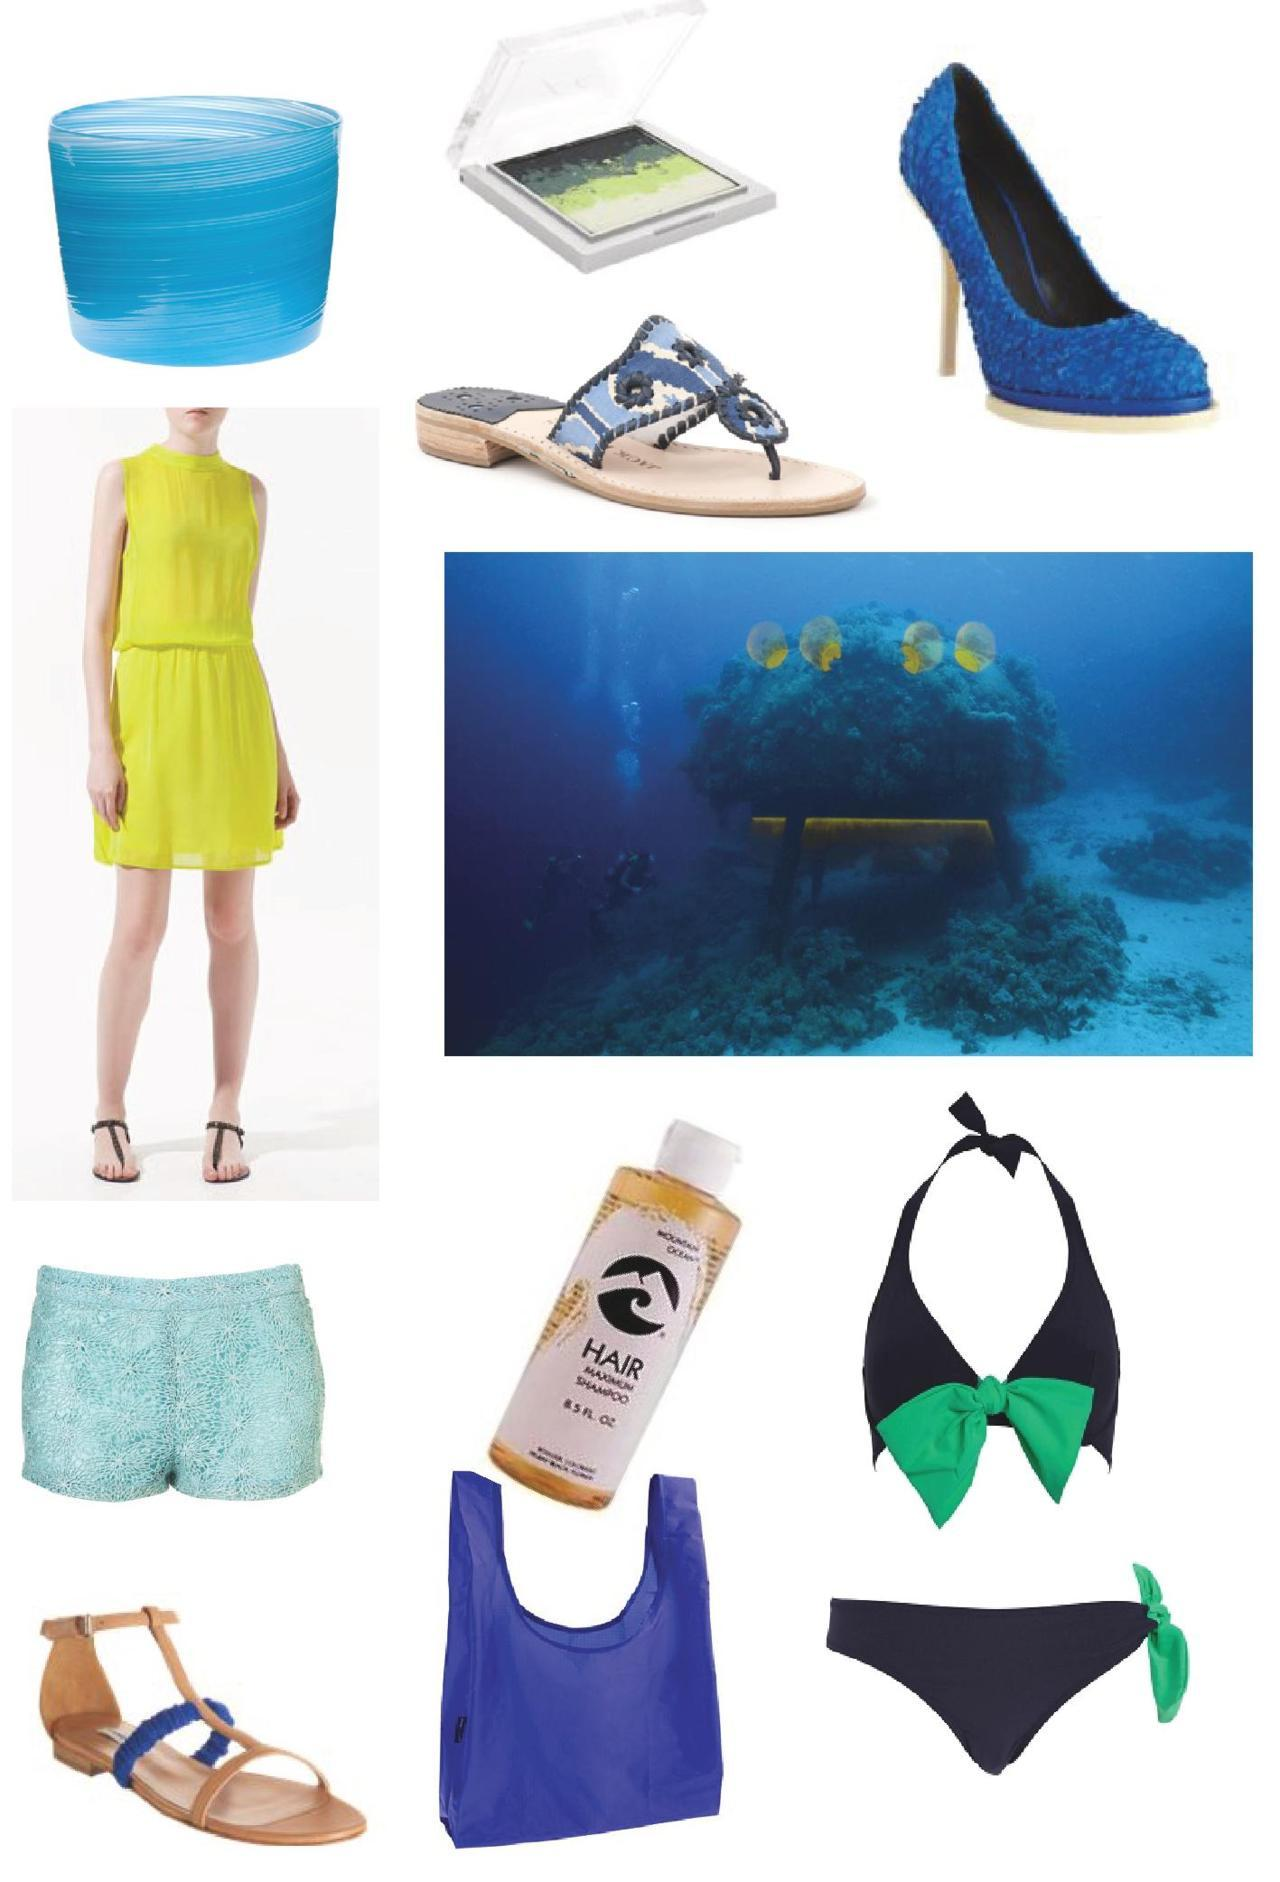 Style inspired by the sea! http://nonsensesensibility.com/blog/2012/05/under-the-sea-with-style-the-starfish-house/